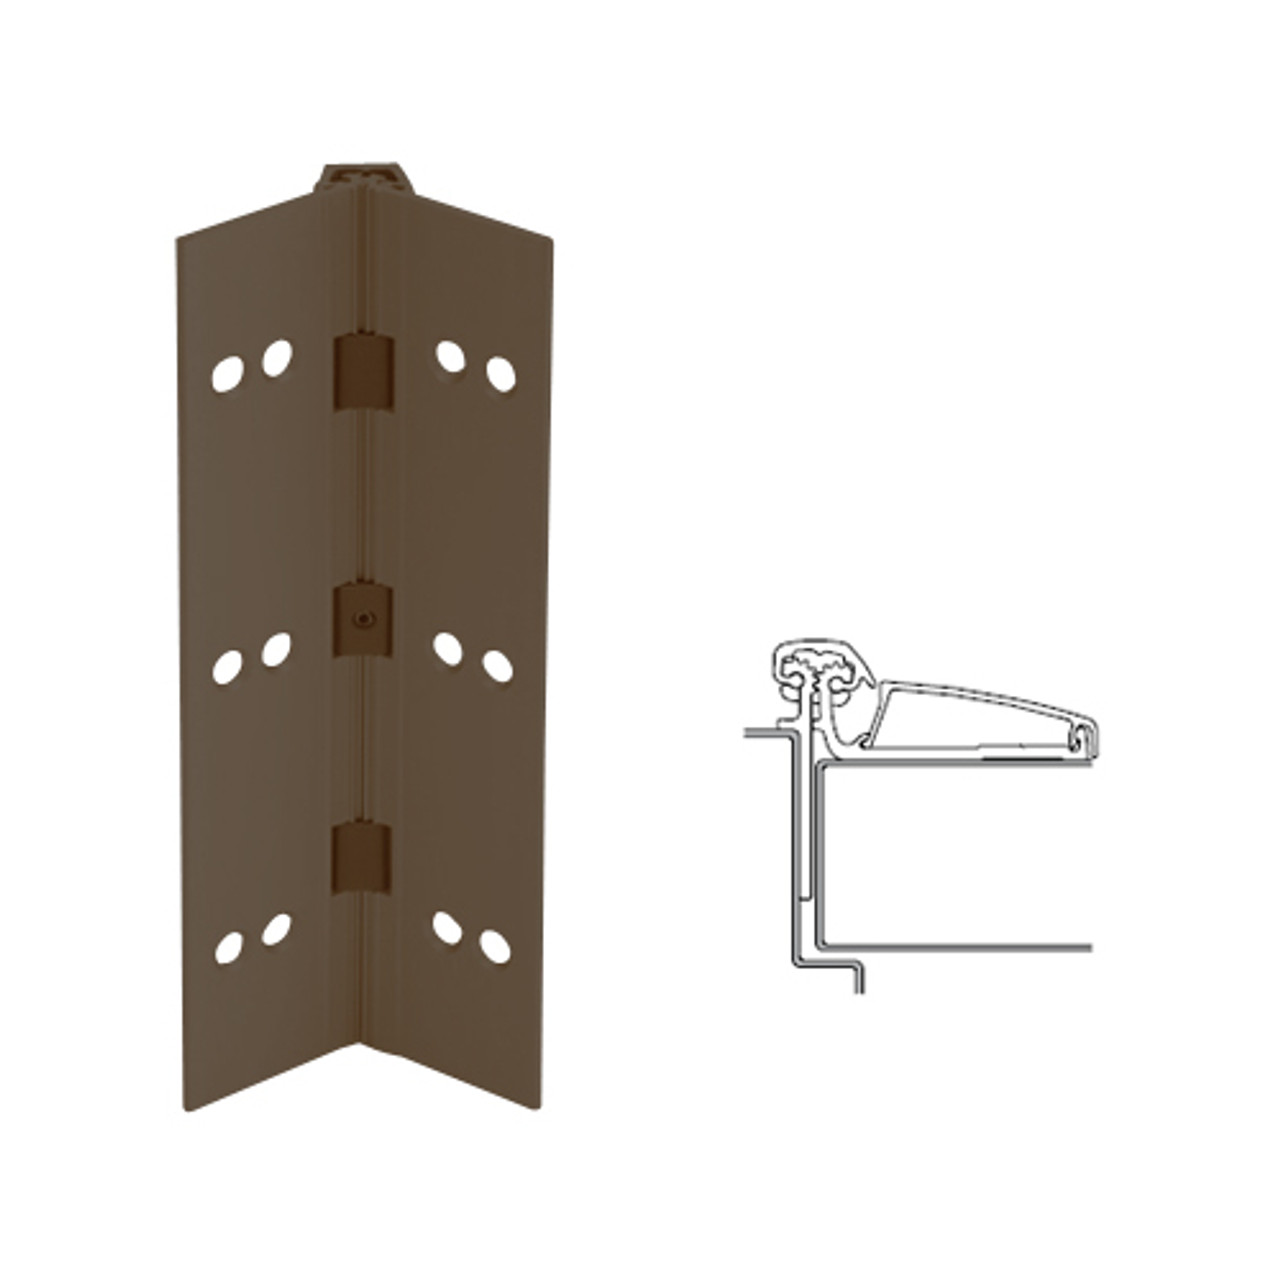 045XY-313AN-83-TEKWD IVES Adjustable Half Surface Continuous Geared Hinges with Wood Screws in Dark Bronze Anodized